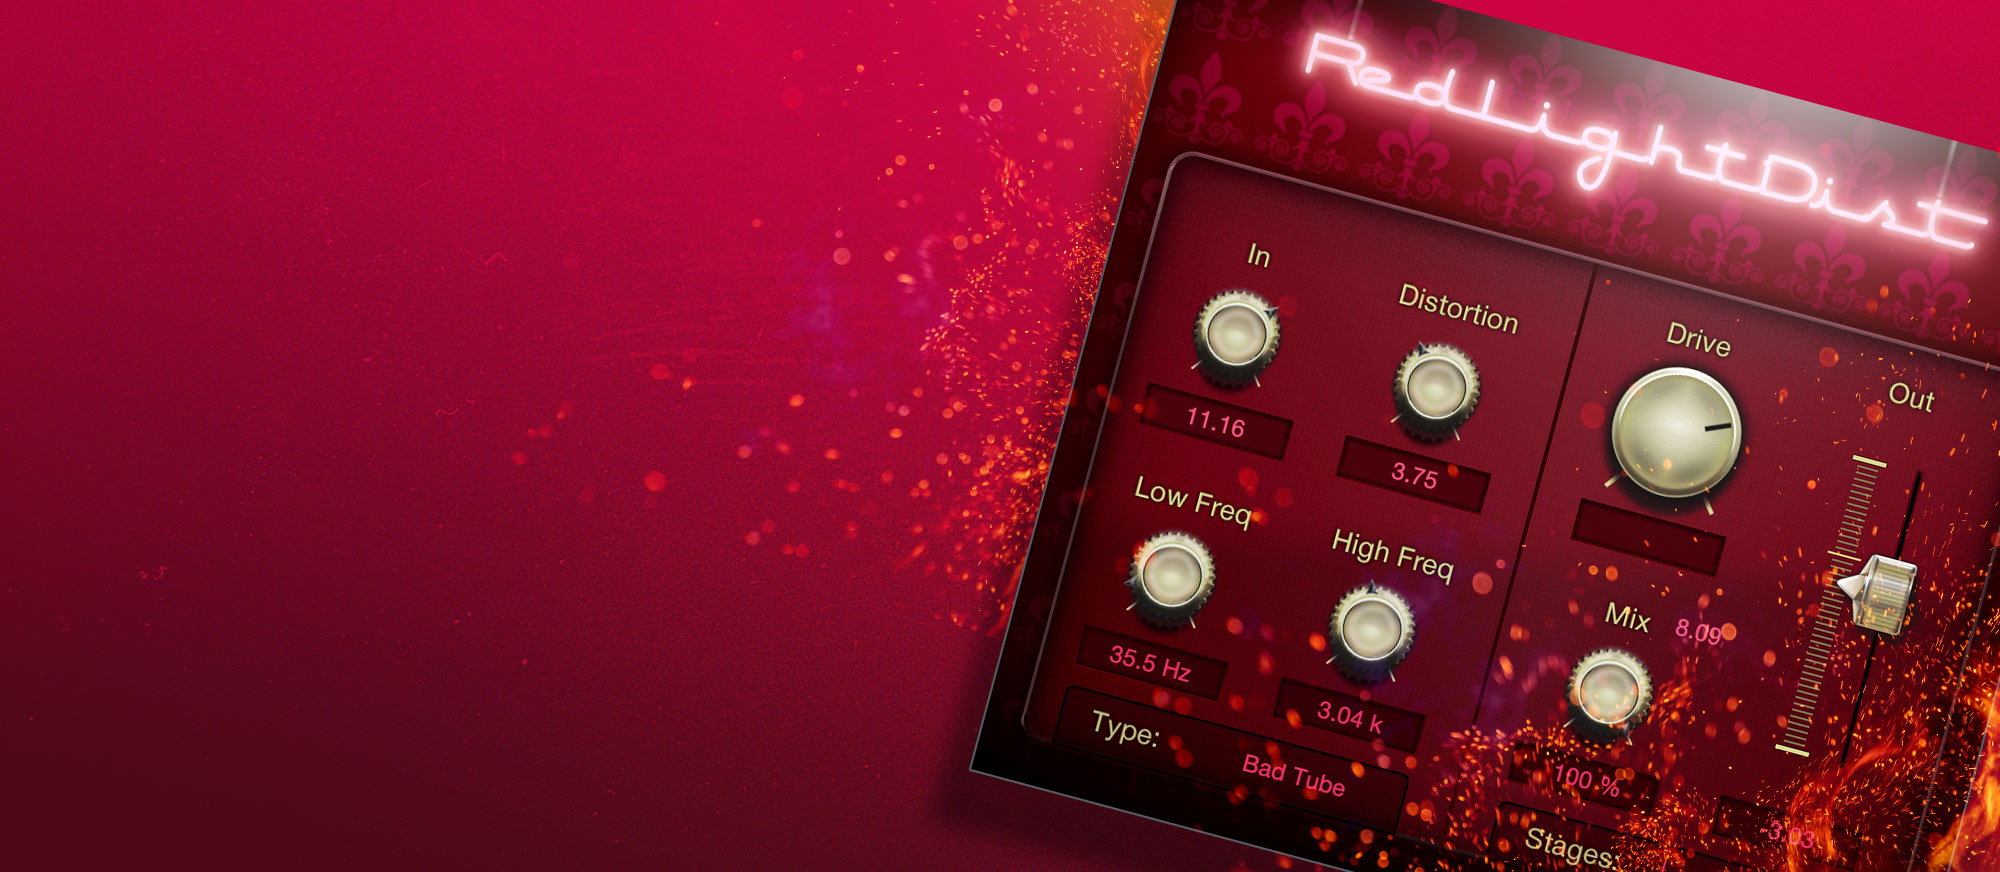 Red Light Distortion user interface